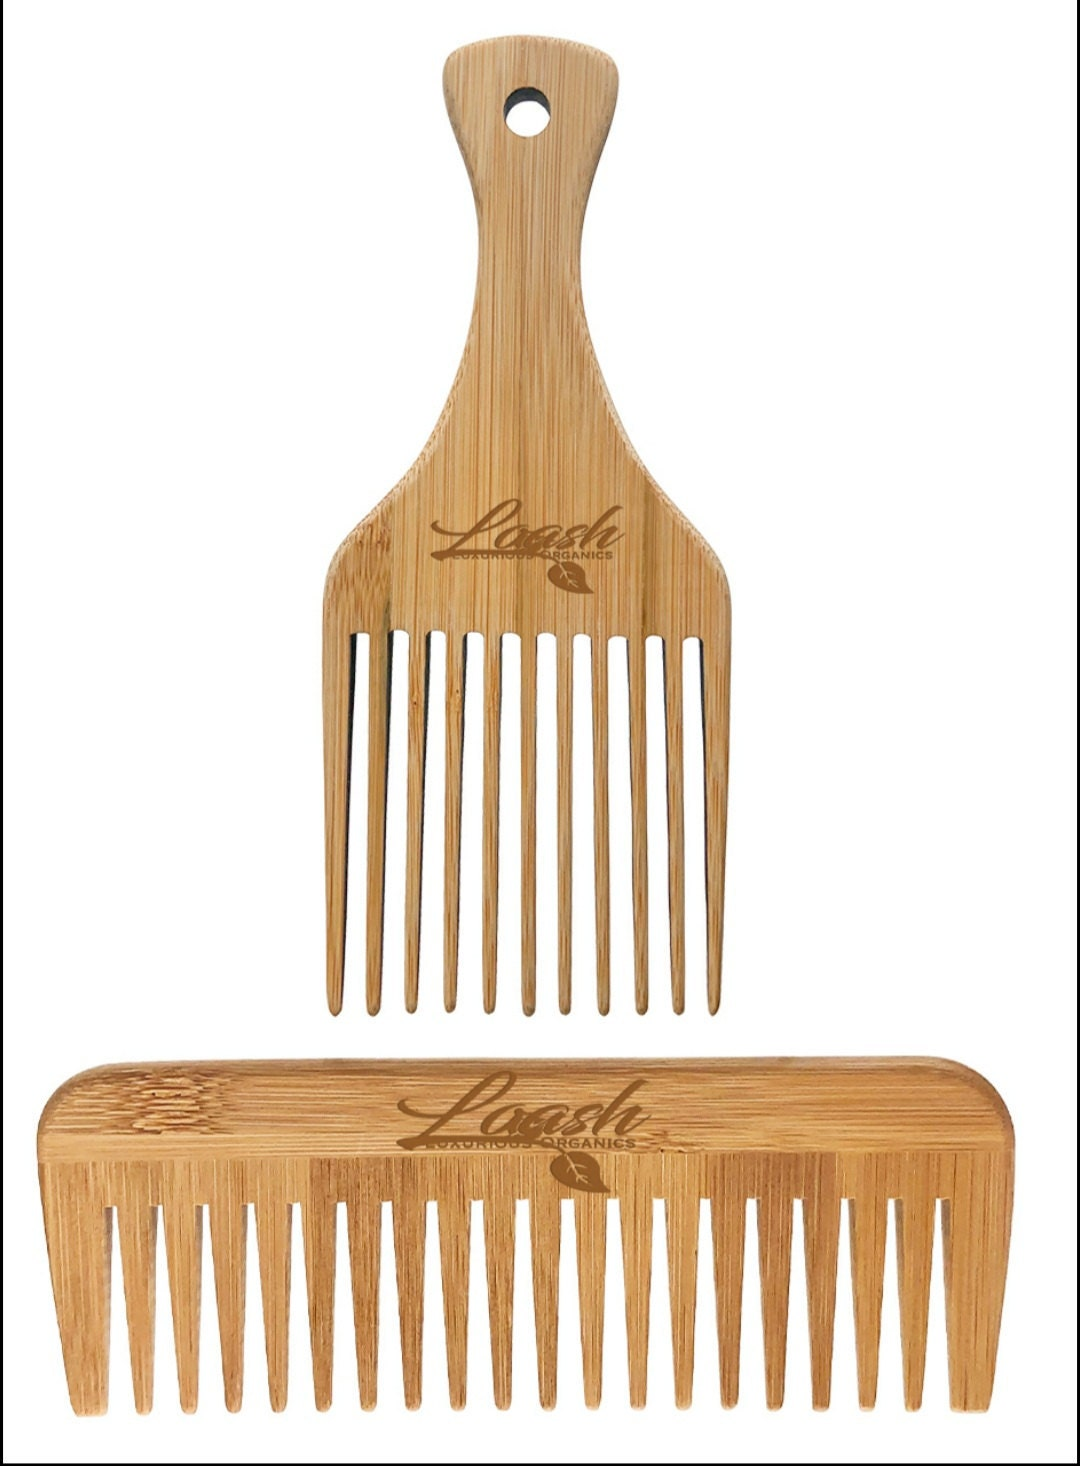 New Item Alert!!! Bamboo Pick & Bamboo Wide Tooth Comb